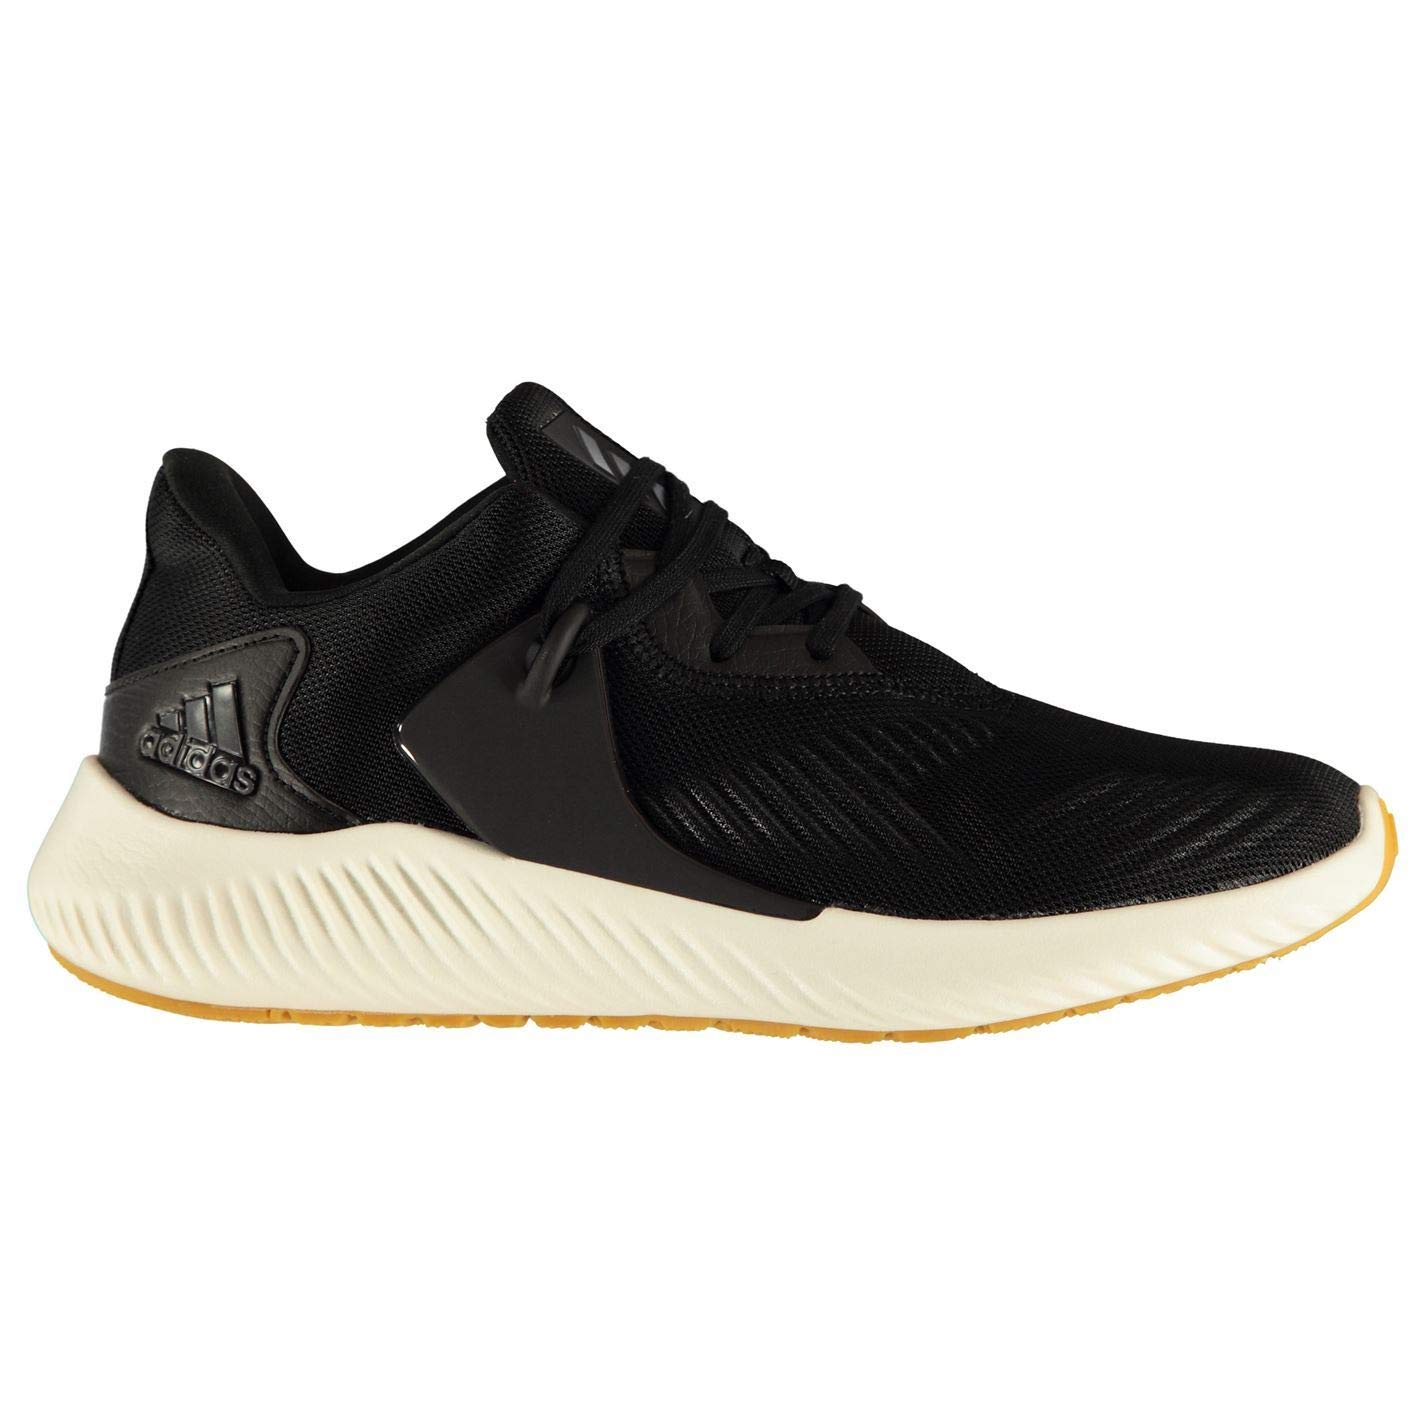 Black (UK9) (EU43.3) (US9.5) Official Adidas Alphabounce RC 2 Running shoes Mens Fitness Jogging Trainers Sneakers